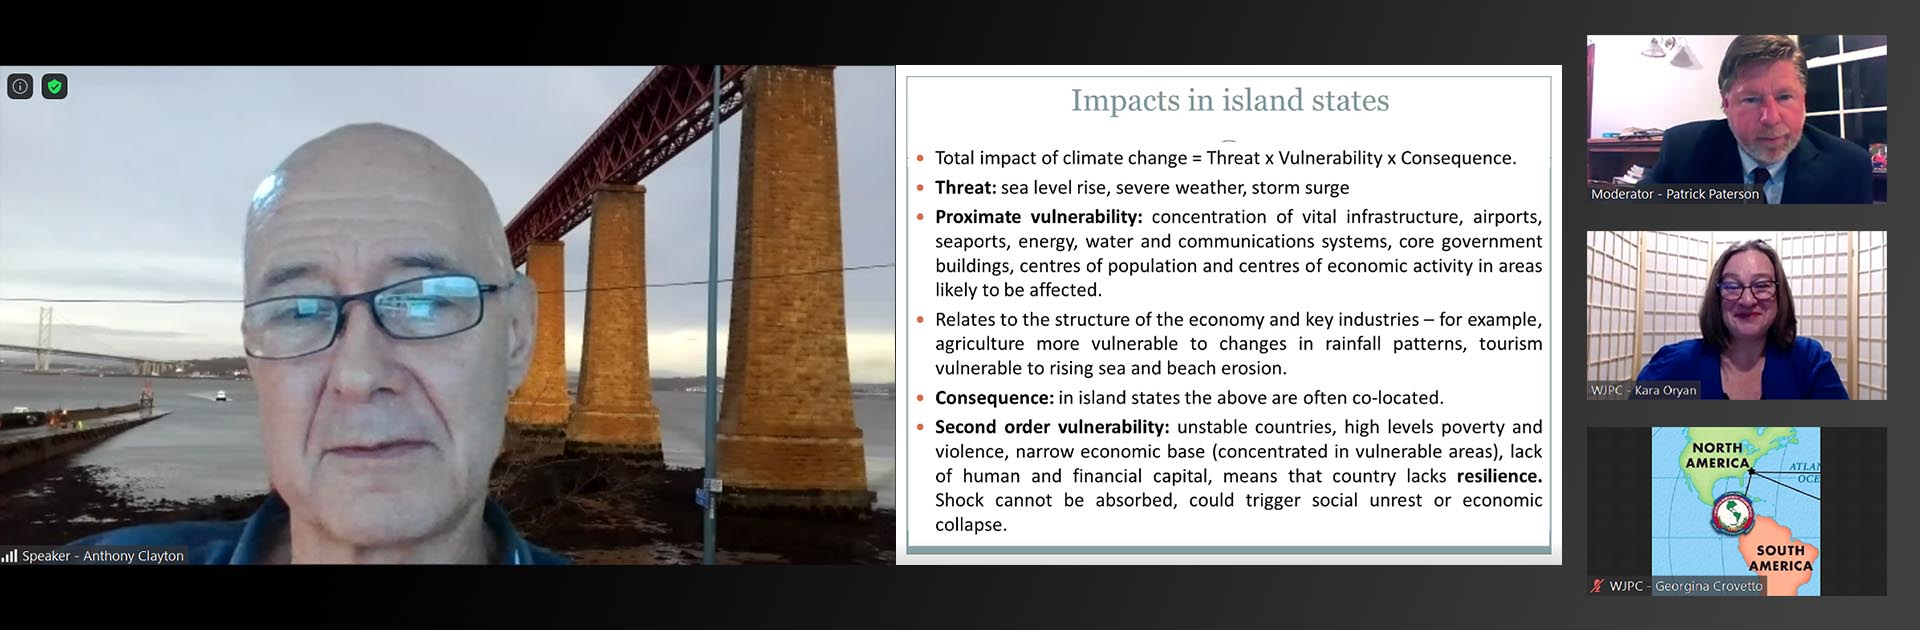 Disaster Risk Resilience: Climate and Security in the Caribbean